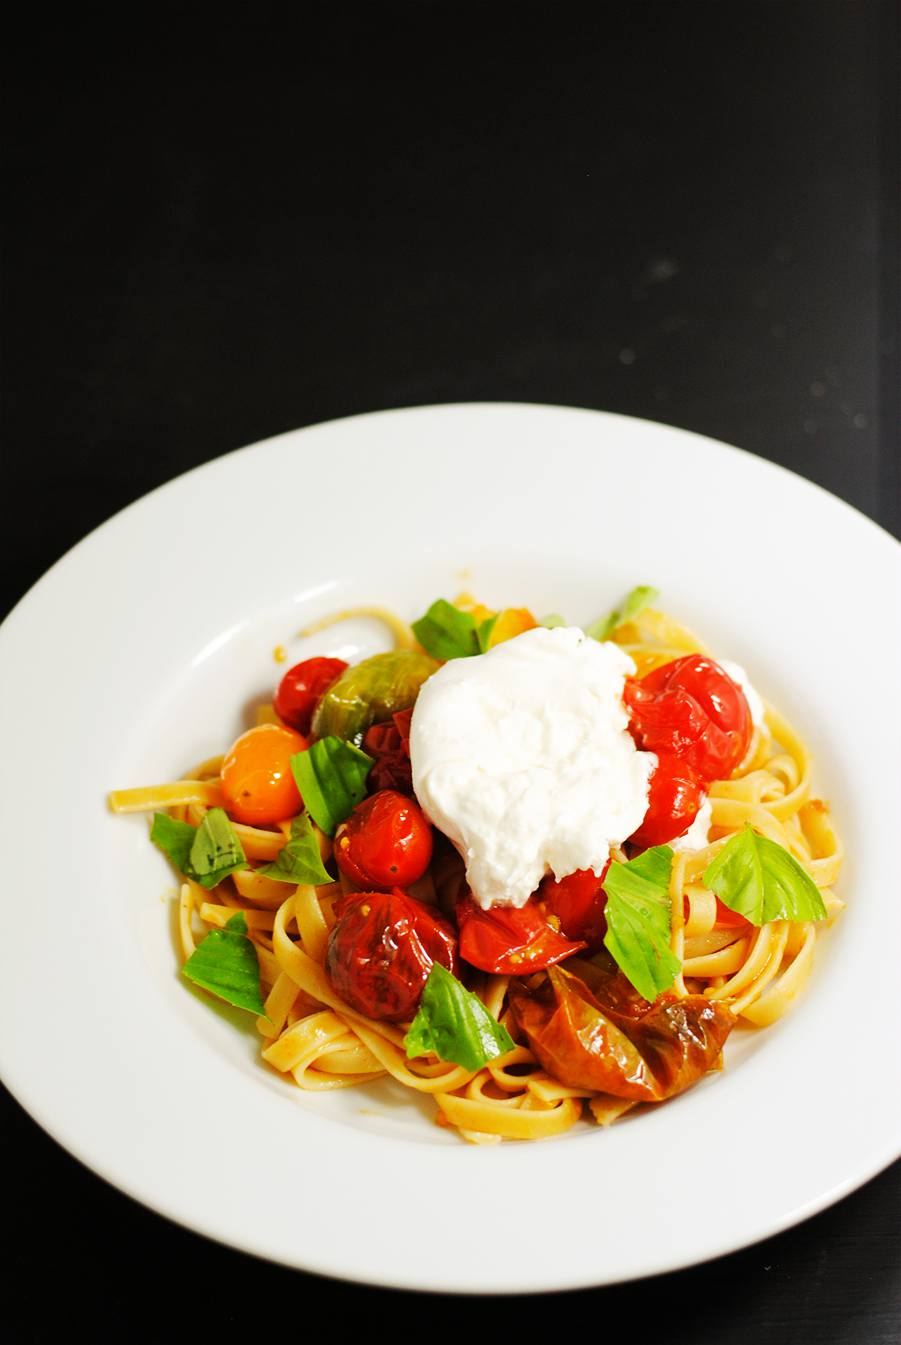 Fettuccine with cherry tomatoes and burrata